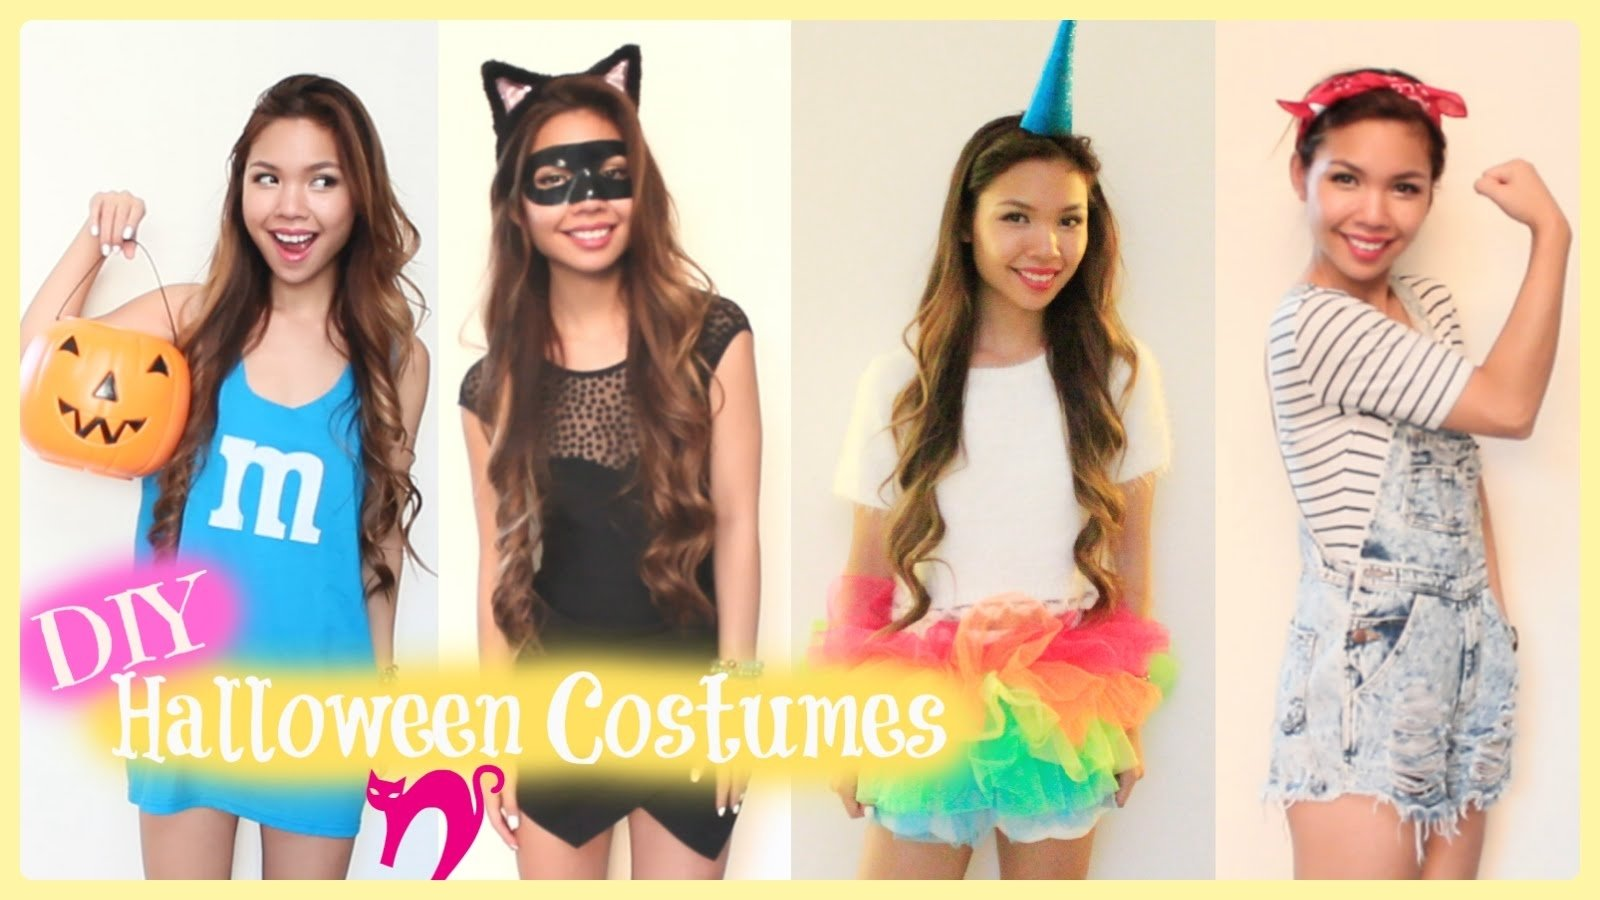 10 Great Really Easy Halloween Costume Ideas diy halloween costume ideas for college students last minute diy 2021